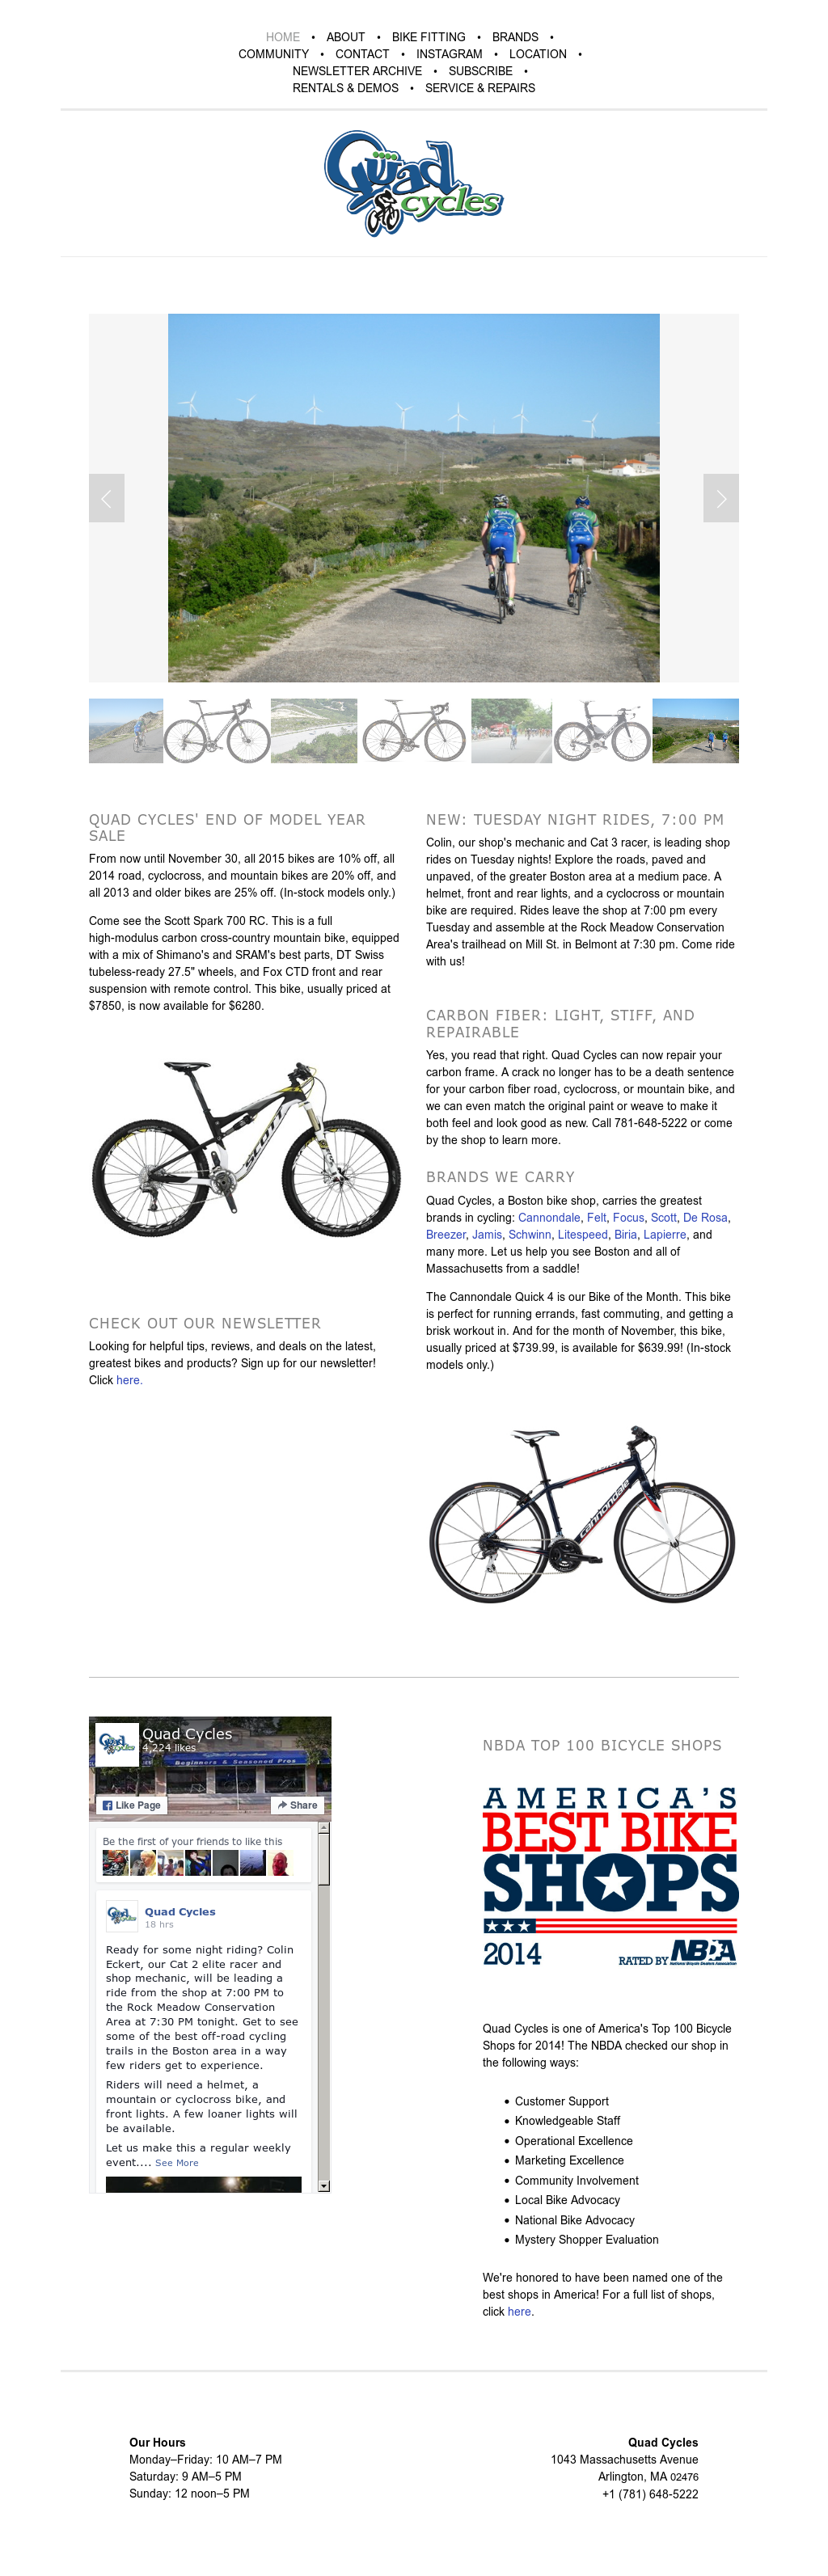 Quad Cycles Competitors, Revenue and Employees - Owler